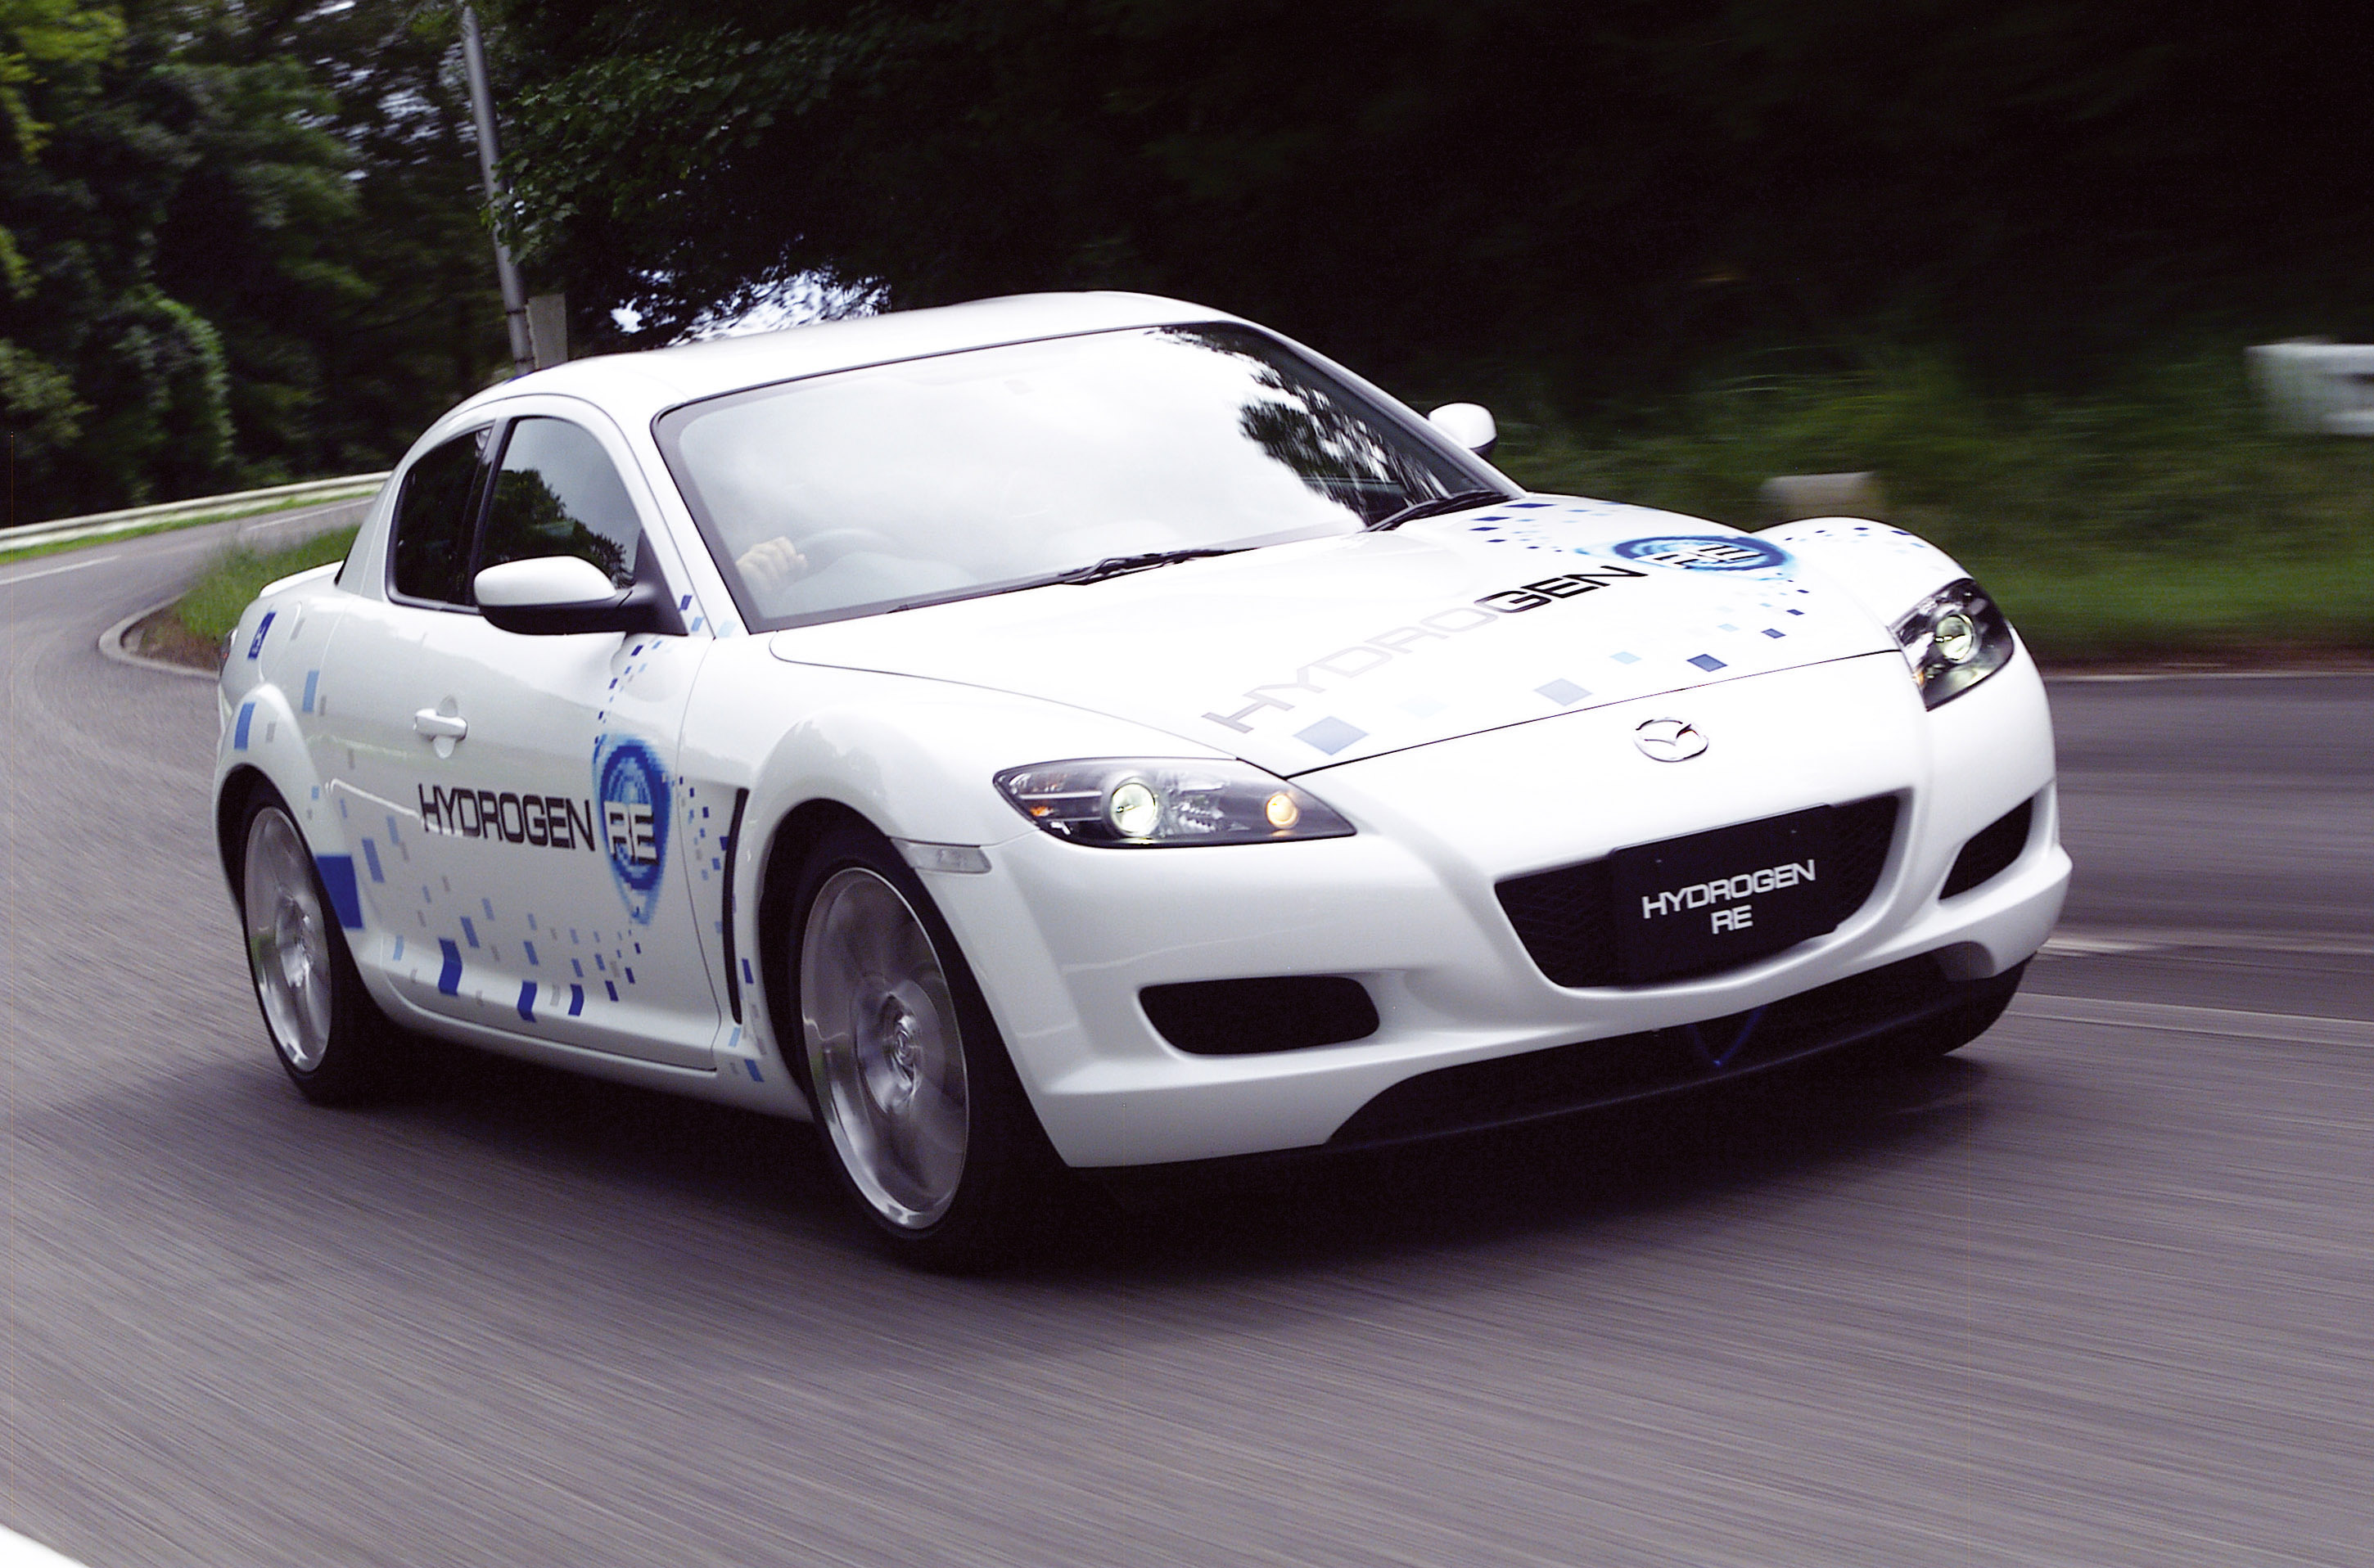 https://www.carsinvasion.com/gallery/2003-mazda-rx-8-hydrogen-concept/2003-mazda-rx-8-hydrogen-concept-04.jpg